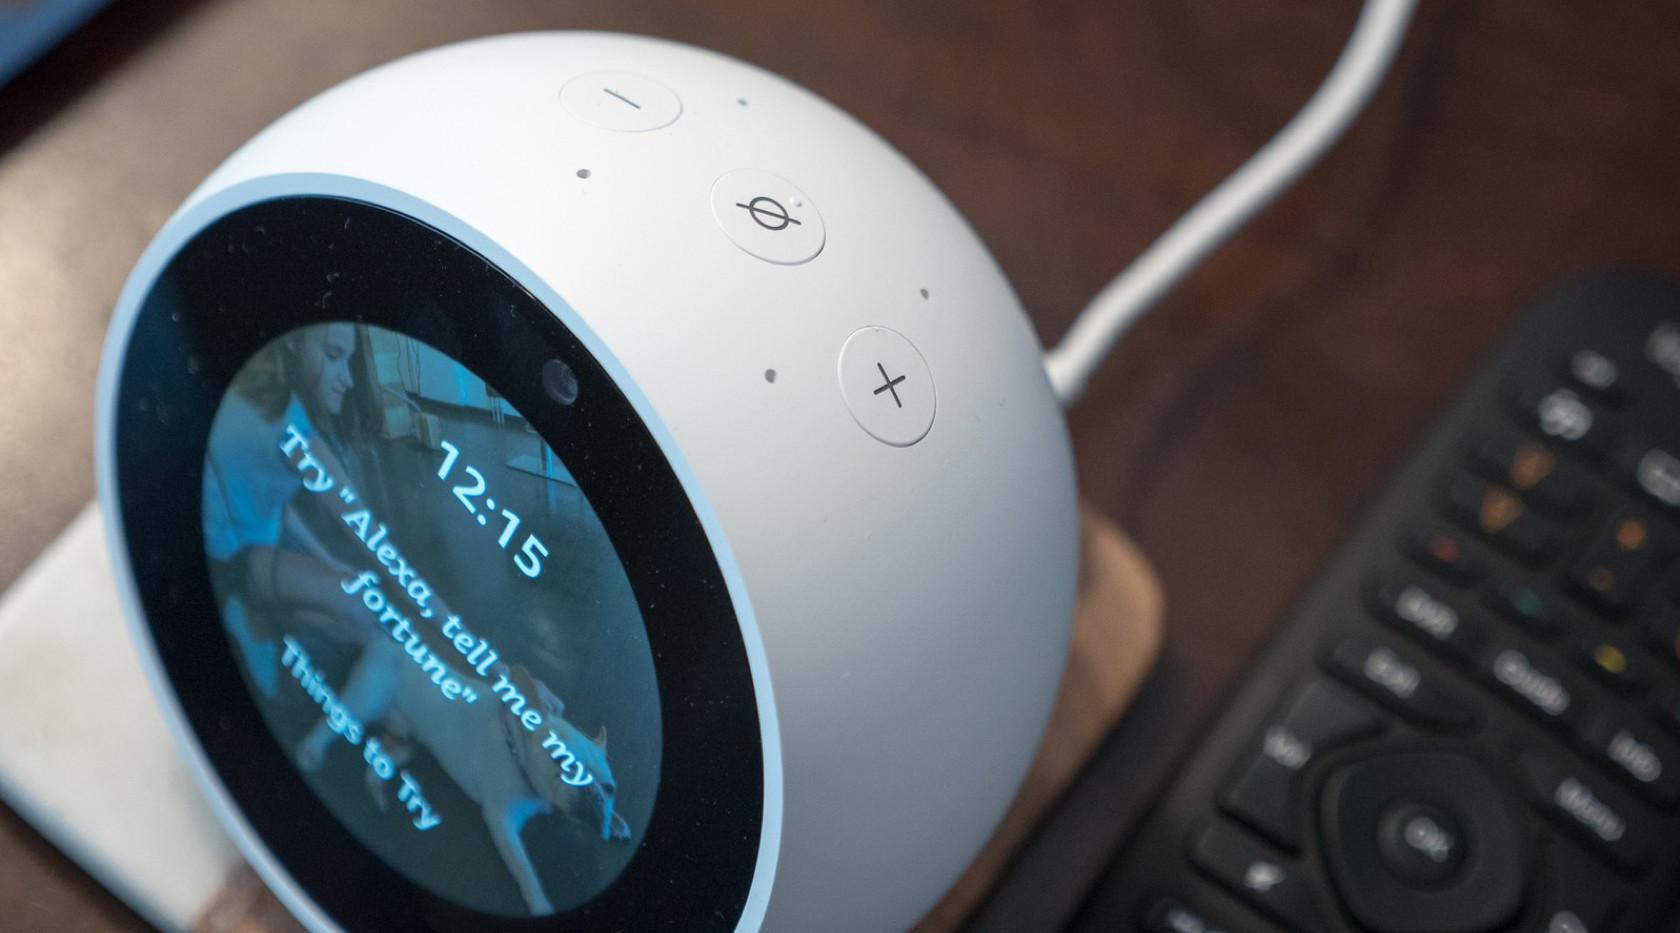 Amazon's Echo Spot smart speaker with a VUI